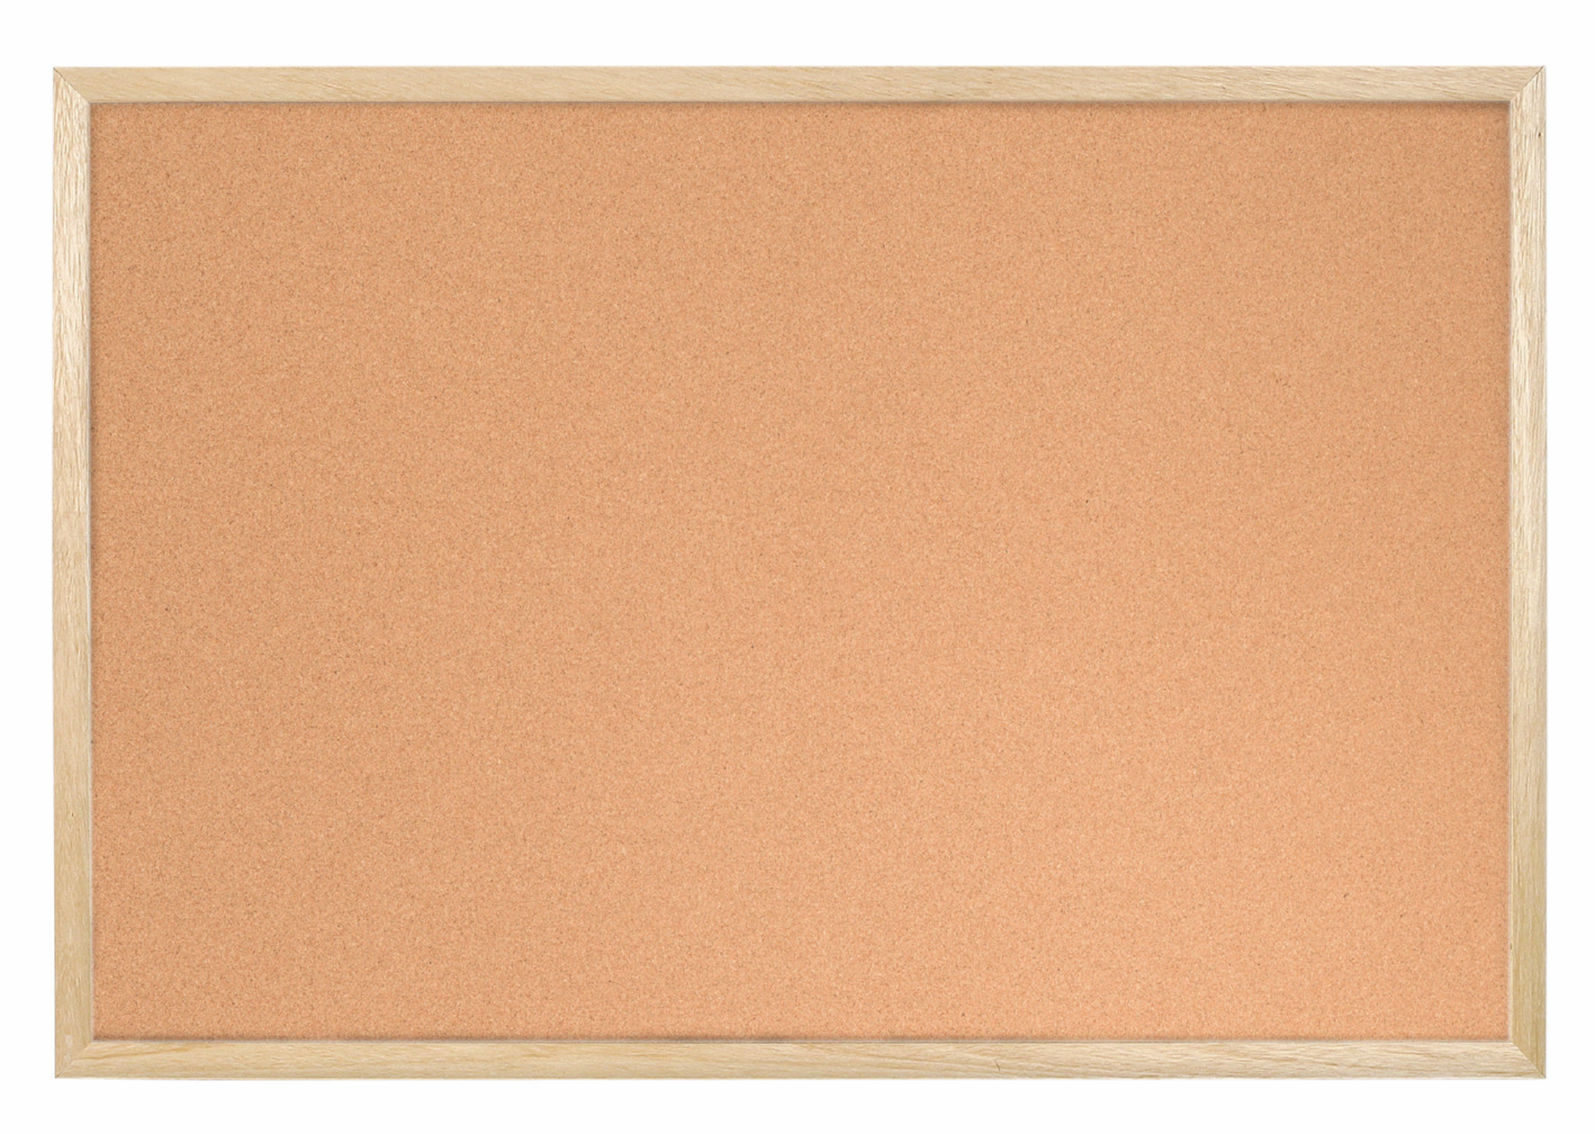 Cork Ntice Board Wood Frame 900x600